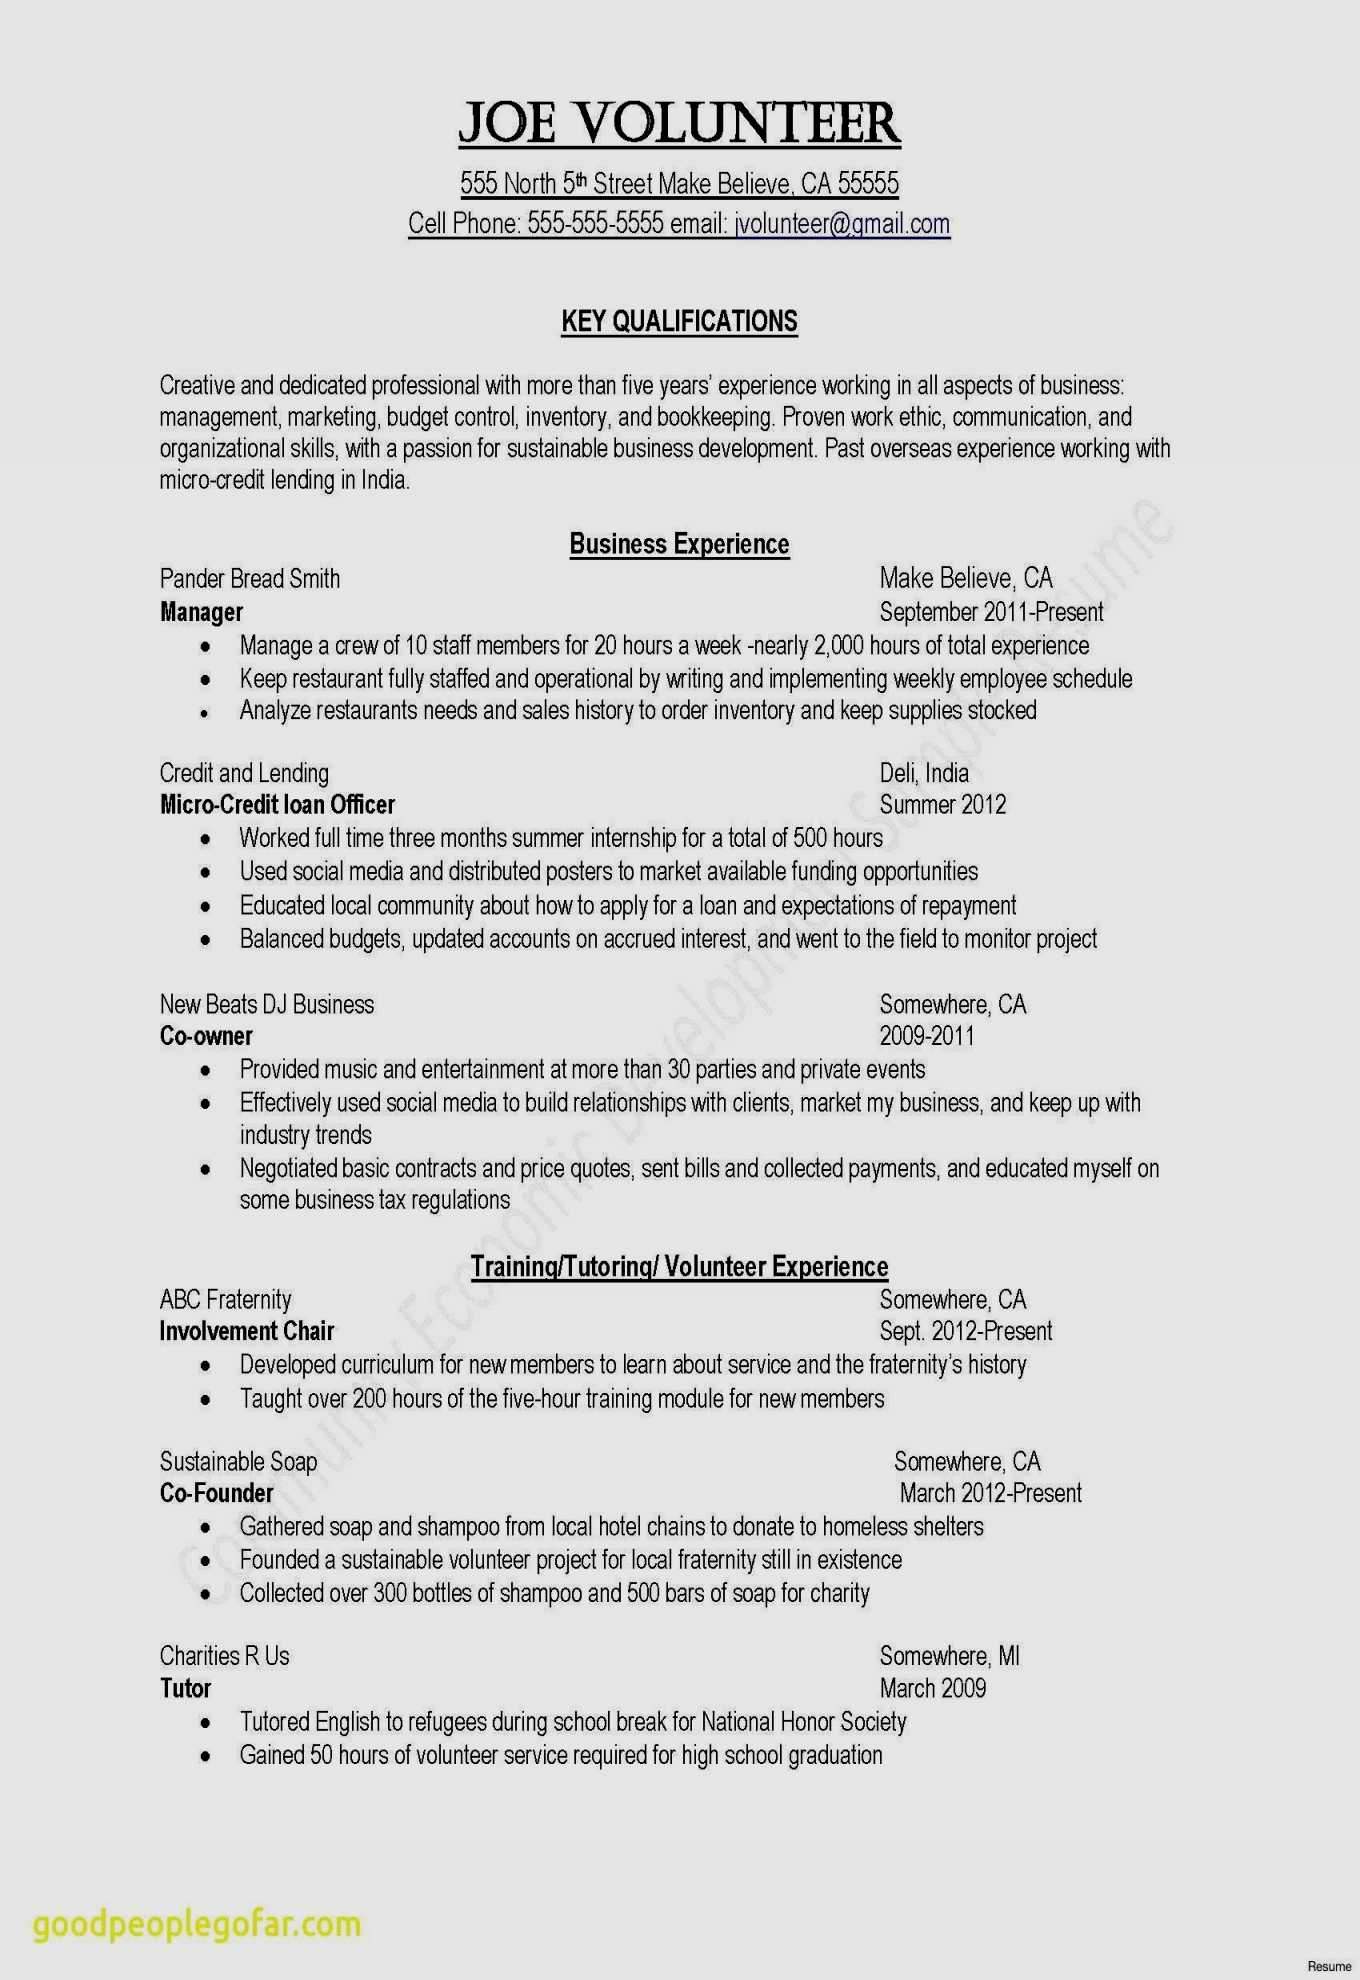 Resume Template for Mba Graduates - 20 Fresh Resume Template Professional Free Resume Templates